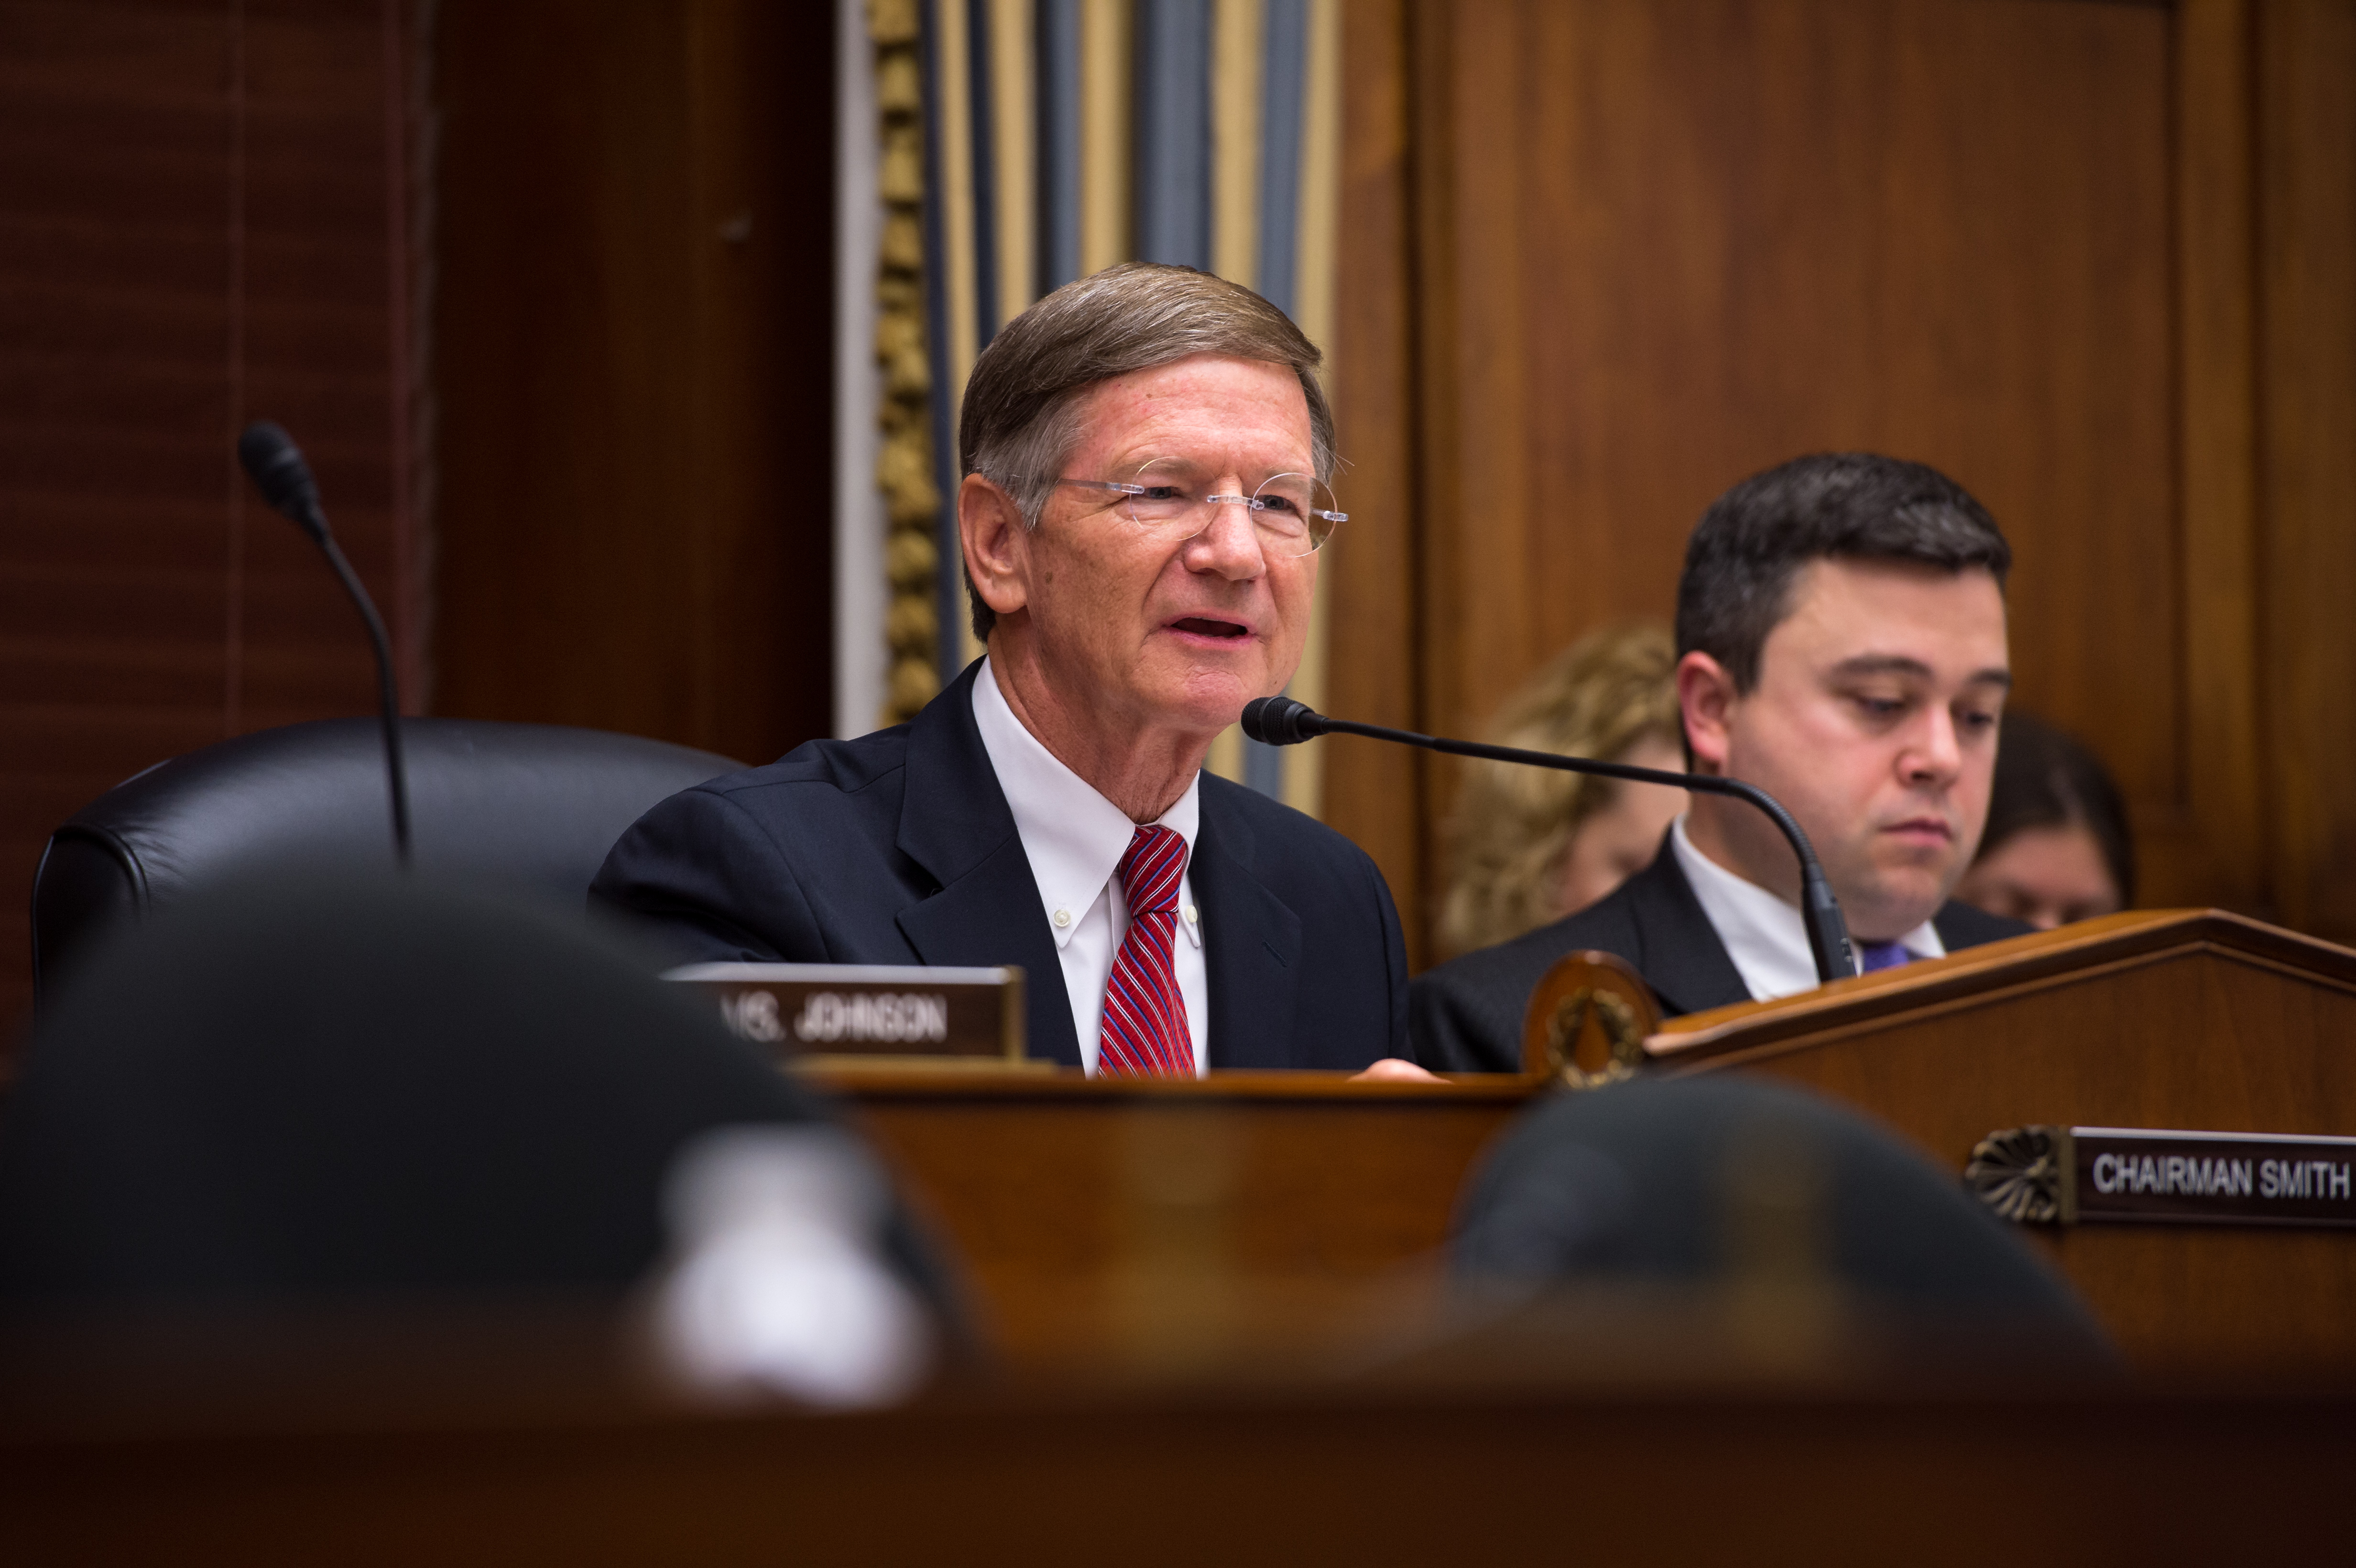 Chairman Lamar Smith (R-TX) held a full-committee event Thursday, July 24, 2014 at the Rayburn House Office Building in Washington, DC to allow members of the Committee on Science, Space, and Technology an opportunity to ask astronauts Steve Swanson and Reid Wiseman questions through a live downlink with the International Space Station (ISS).